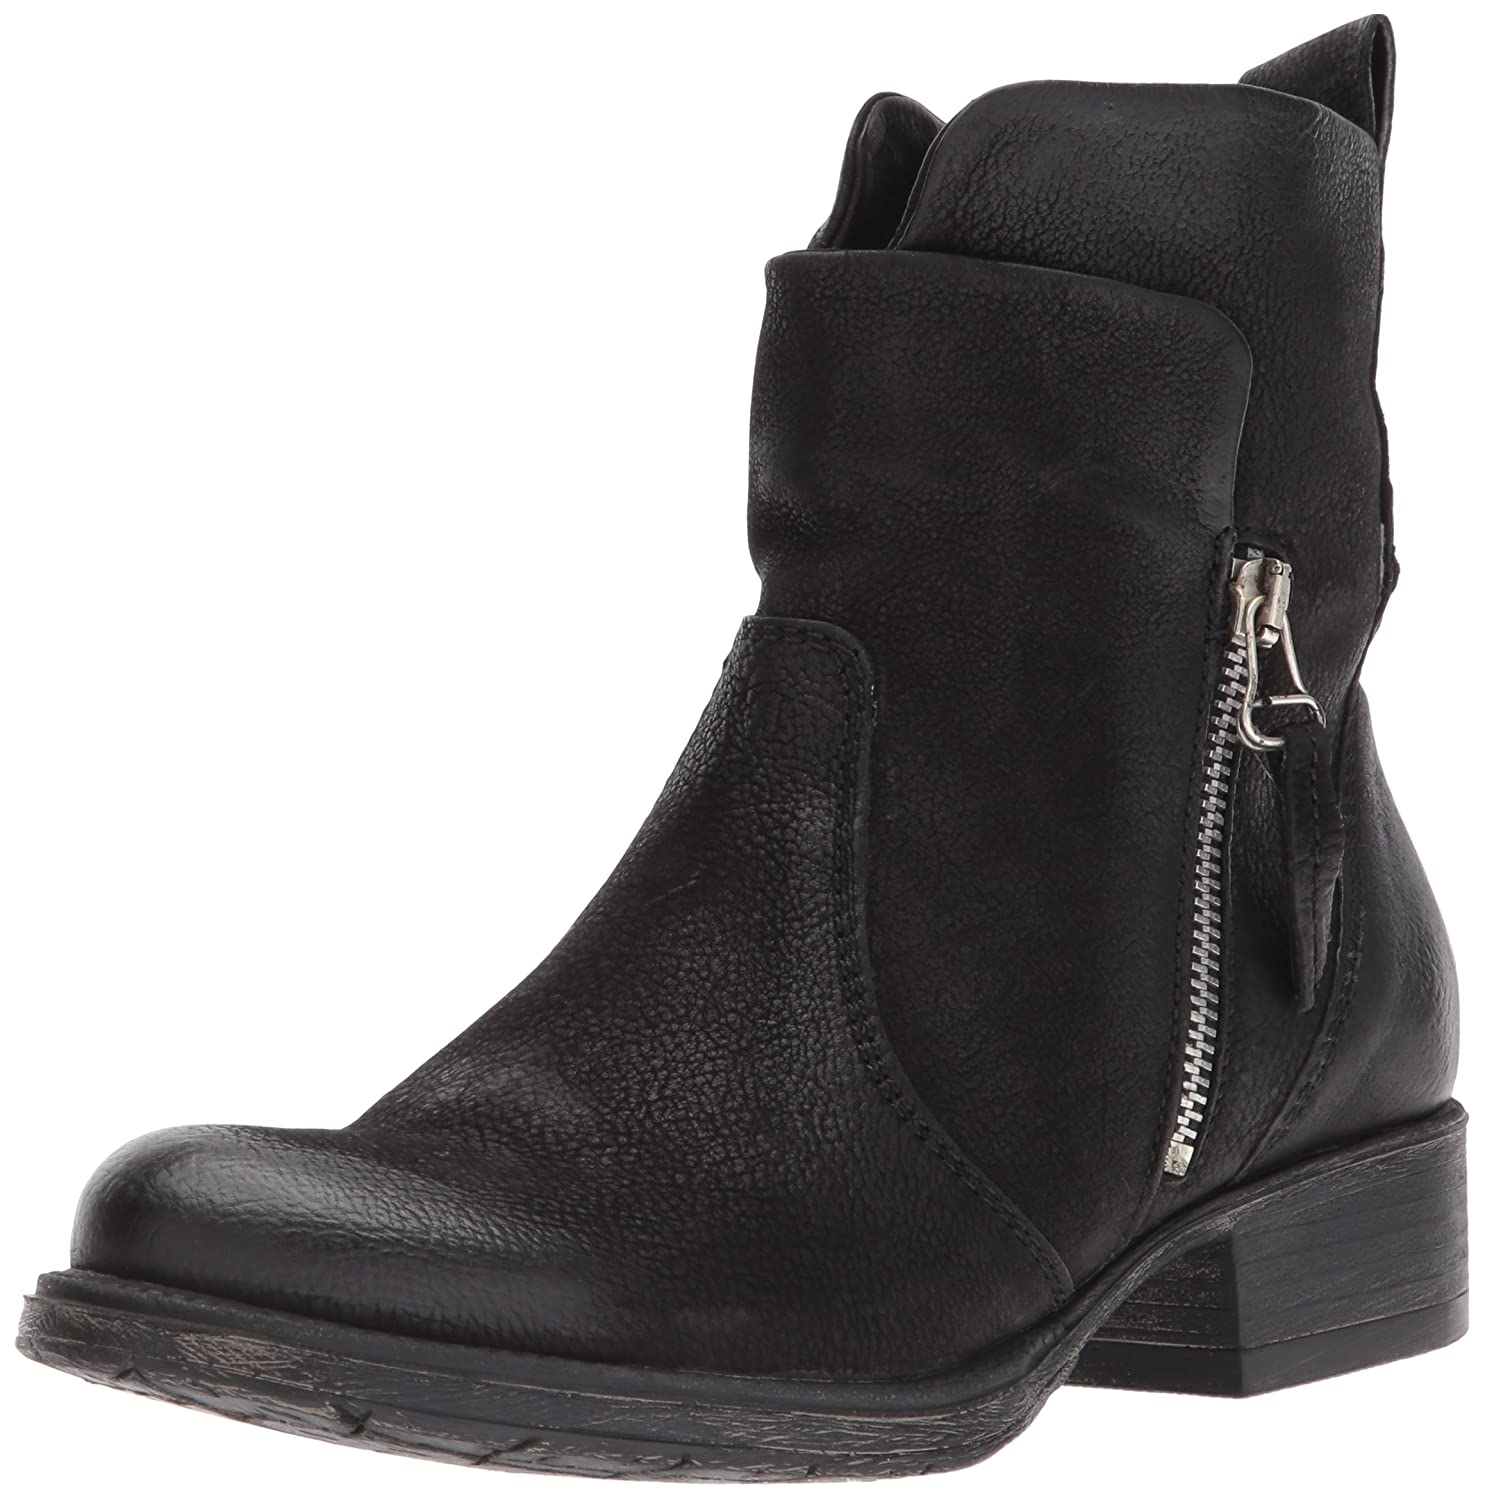 Miz Mooz Women's Nimble Ankle Boot B06XSKZSZ5 36 M EU (5.5-6 US)|Black